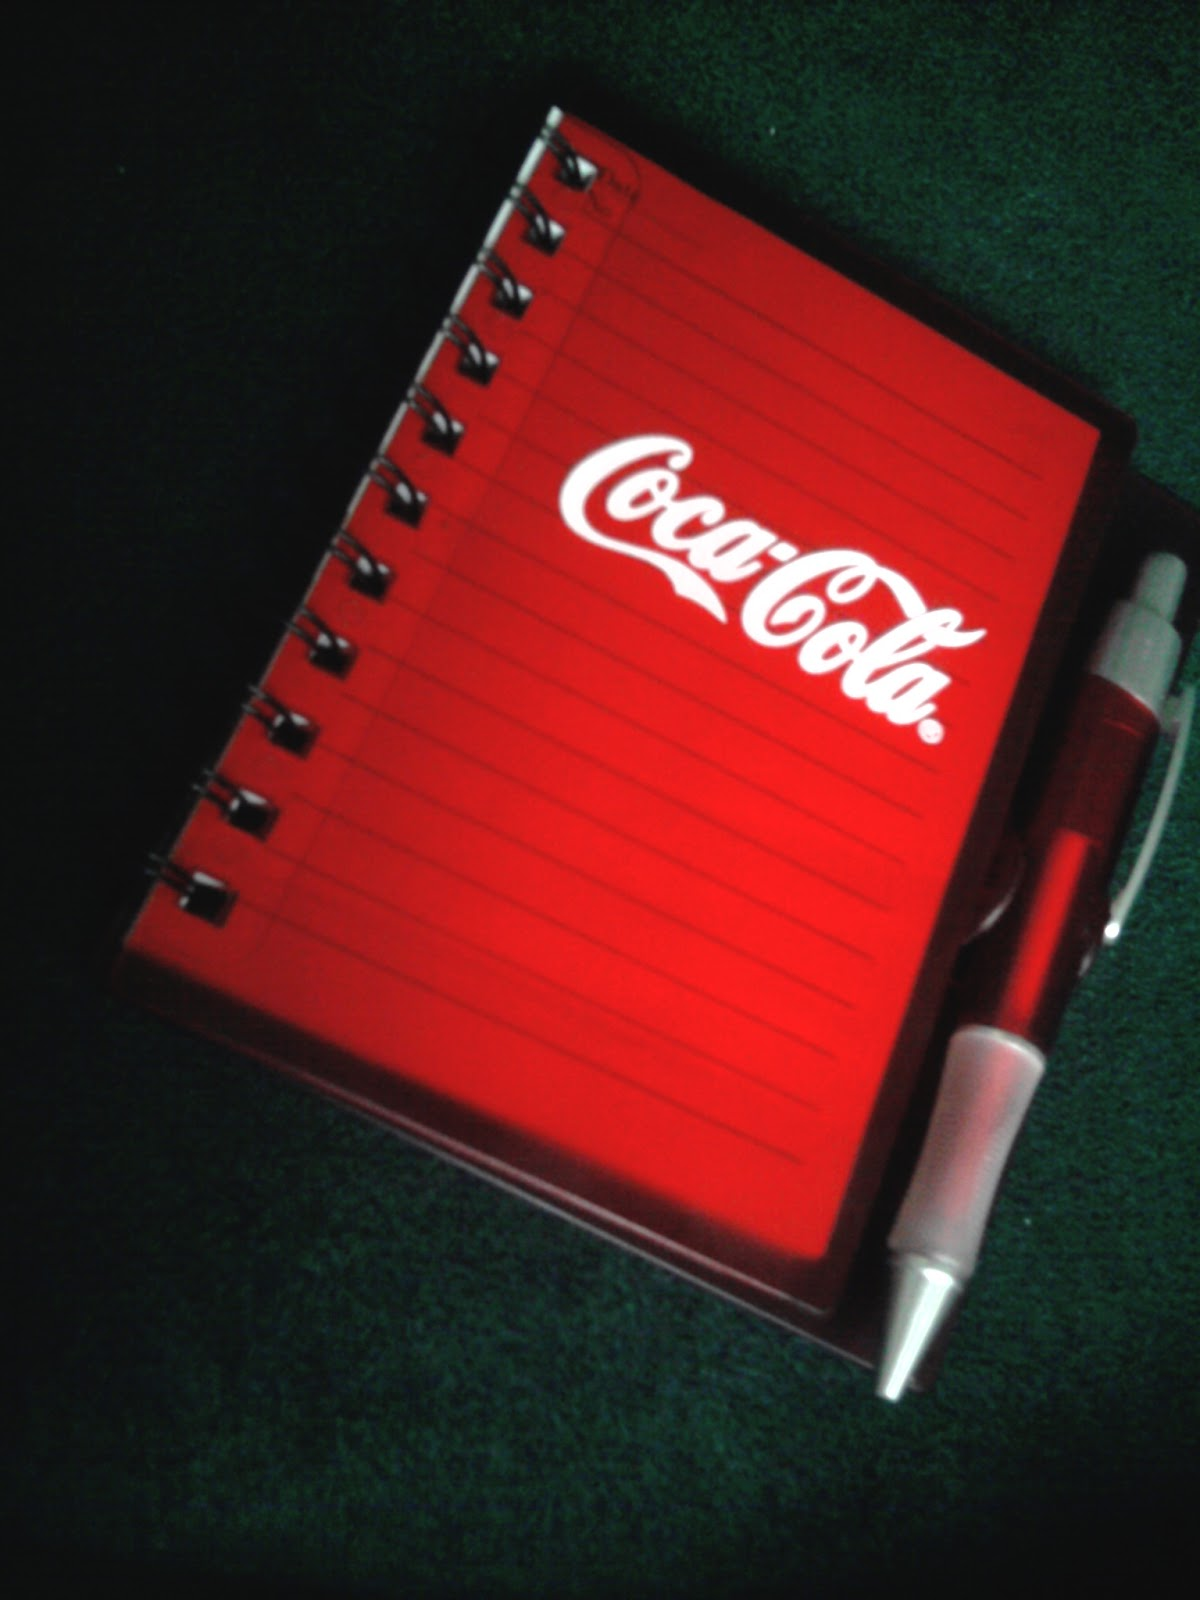 misis know how got a coca cola notebook i don t know when i started loving notebooks i am not a writer or something but everytime i have this even i am not fond of writing it seems that i can